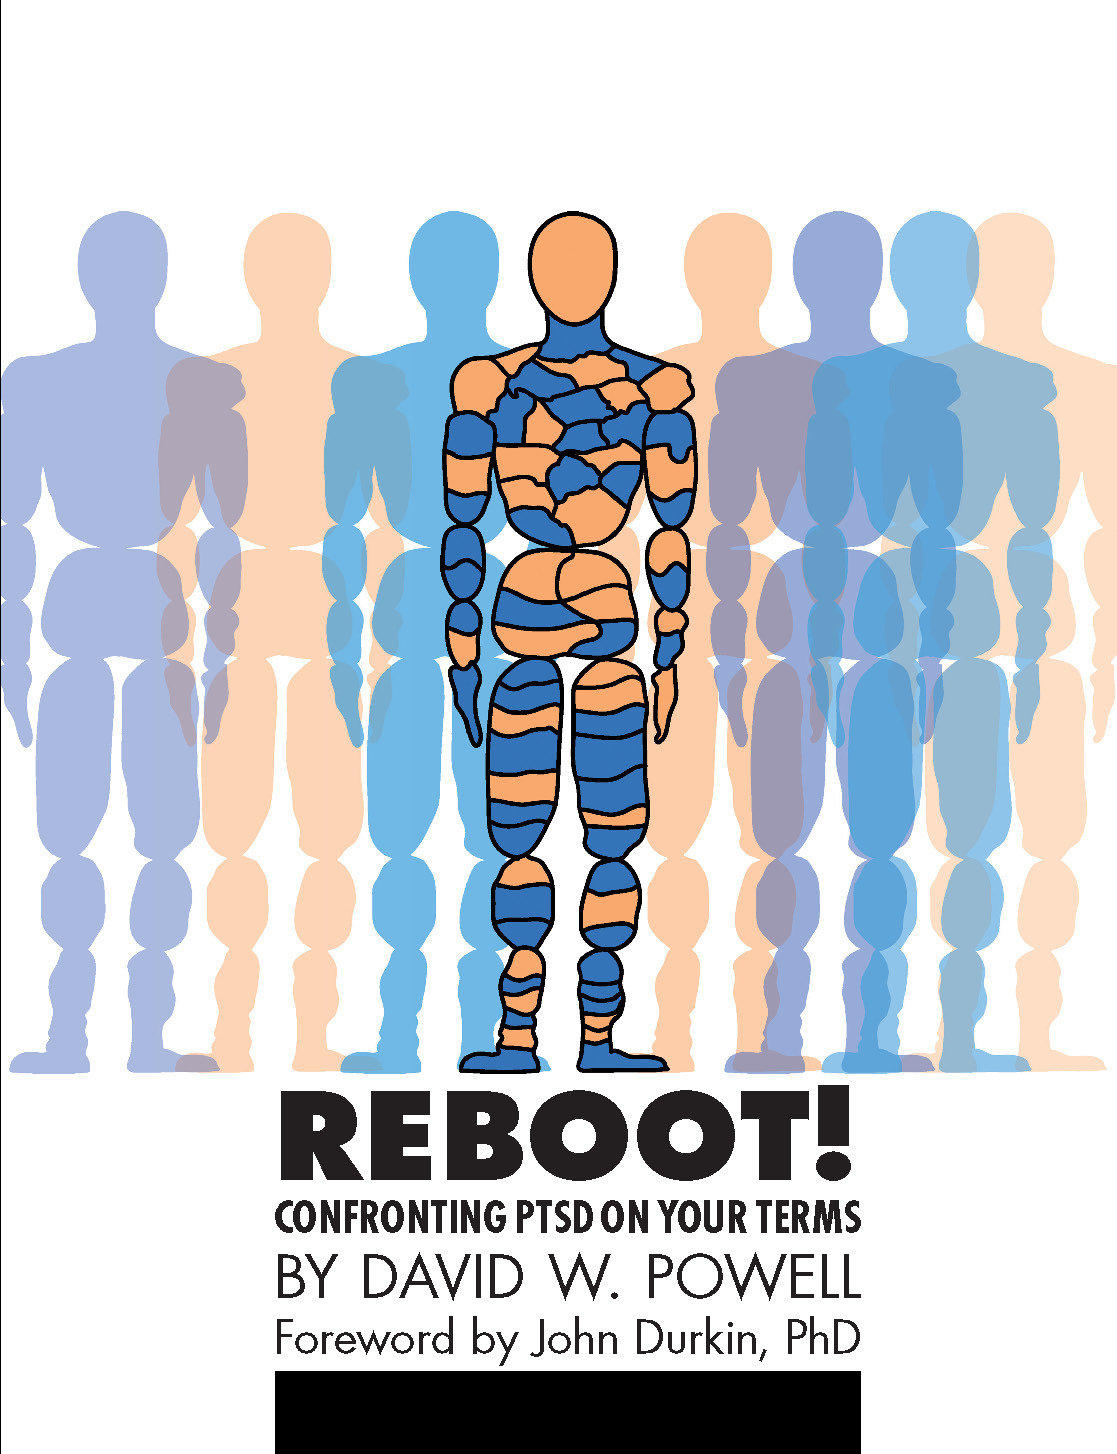 REBOOT!: Confronting PTSD on Your Terms